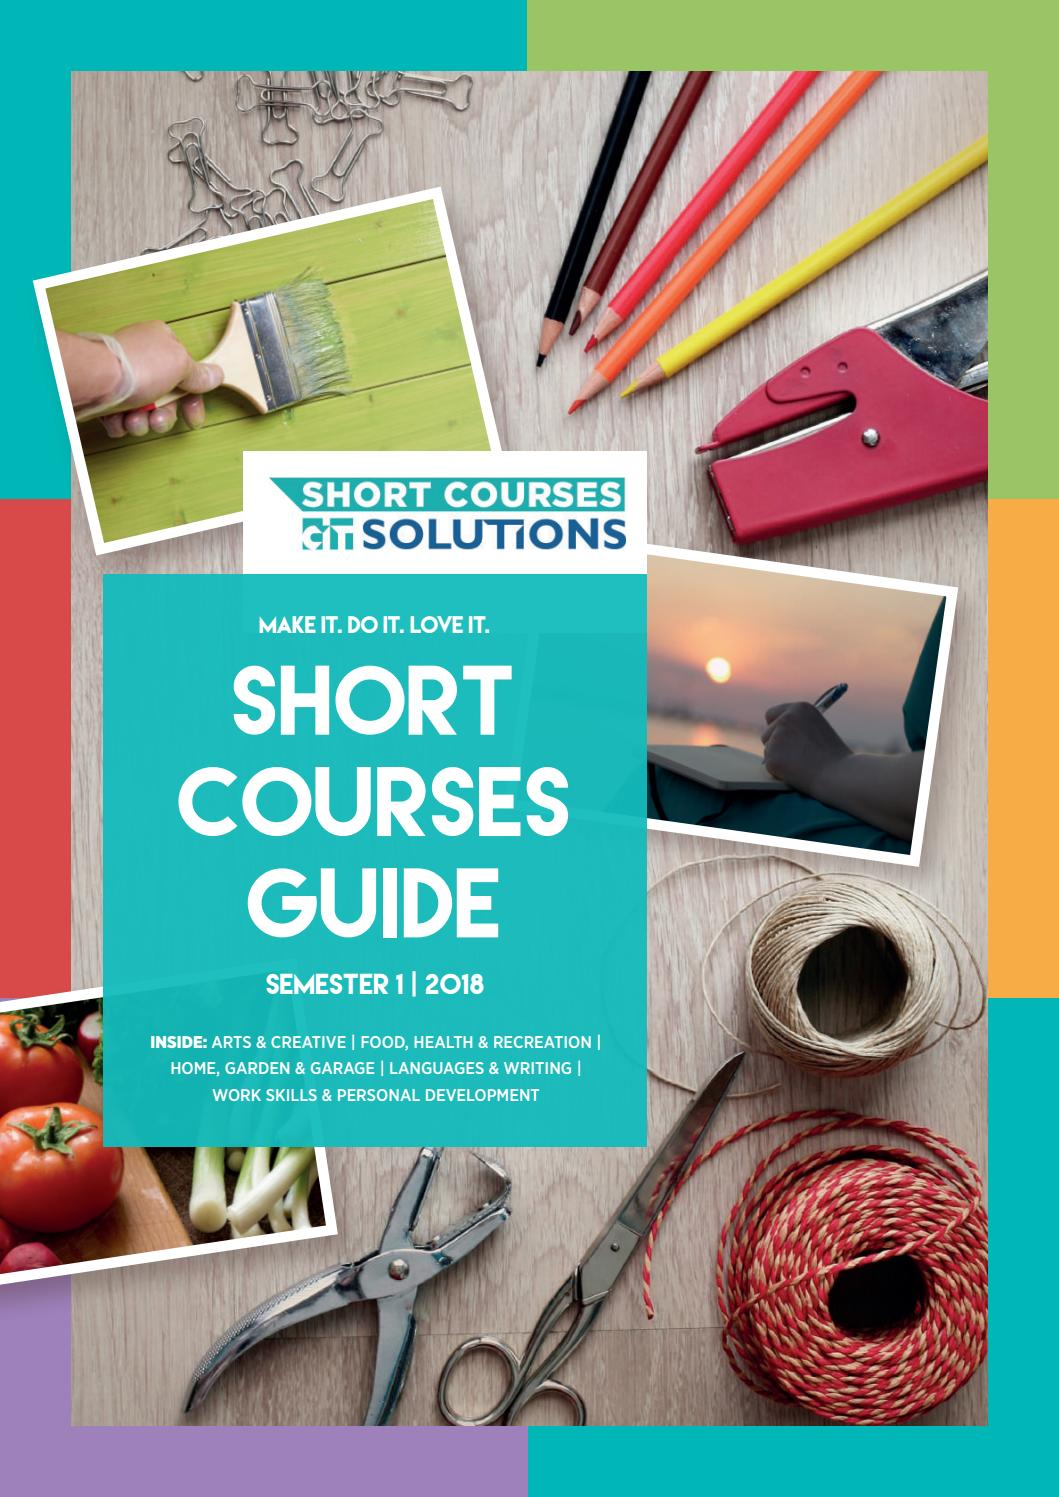 Short Courses Guide - Semester 1, 2018 by csc_citsolutions